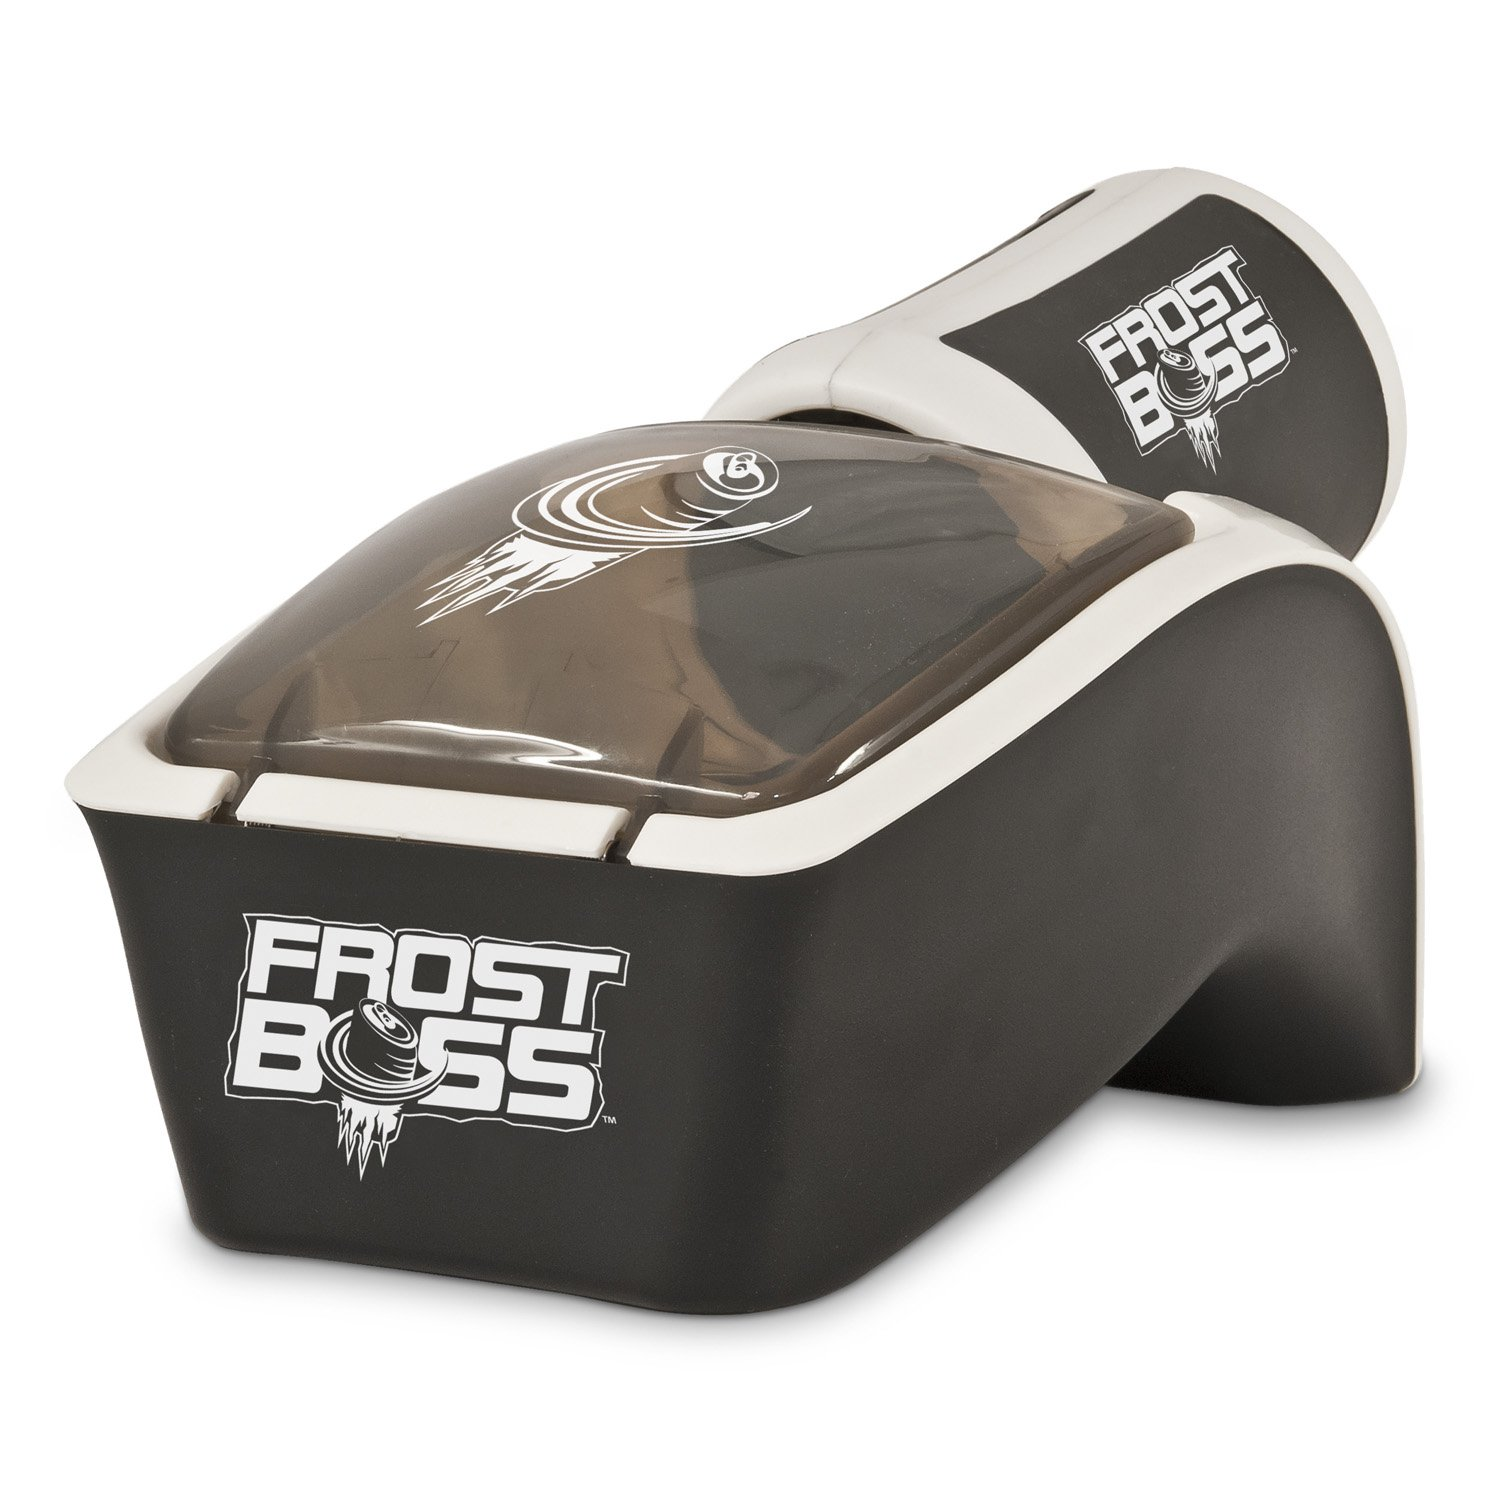 Frost Boss IC3 Beverage Chiller - Chills Can in Less Than 2 Minutes